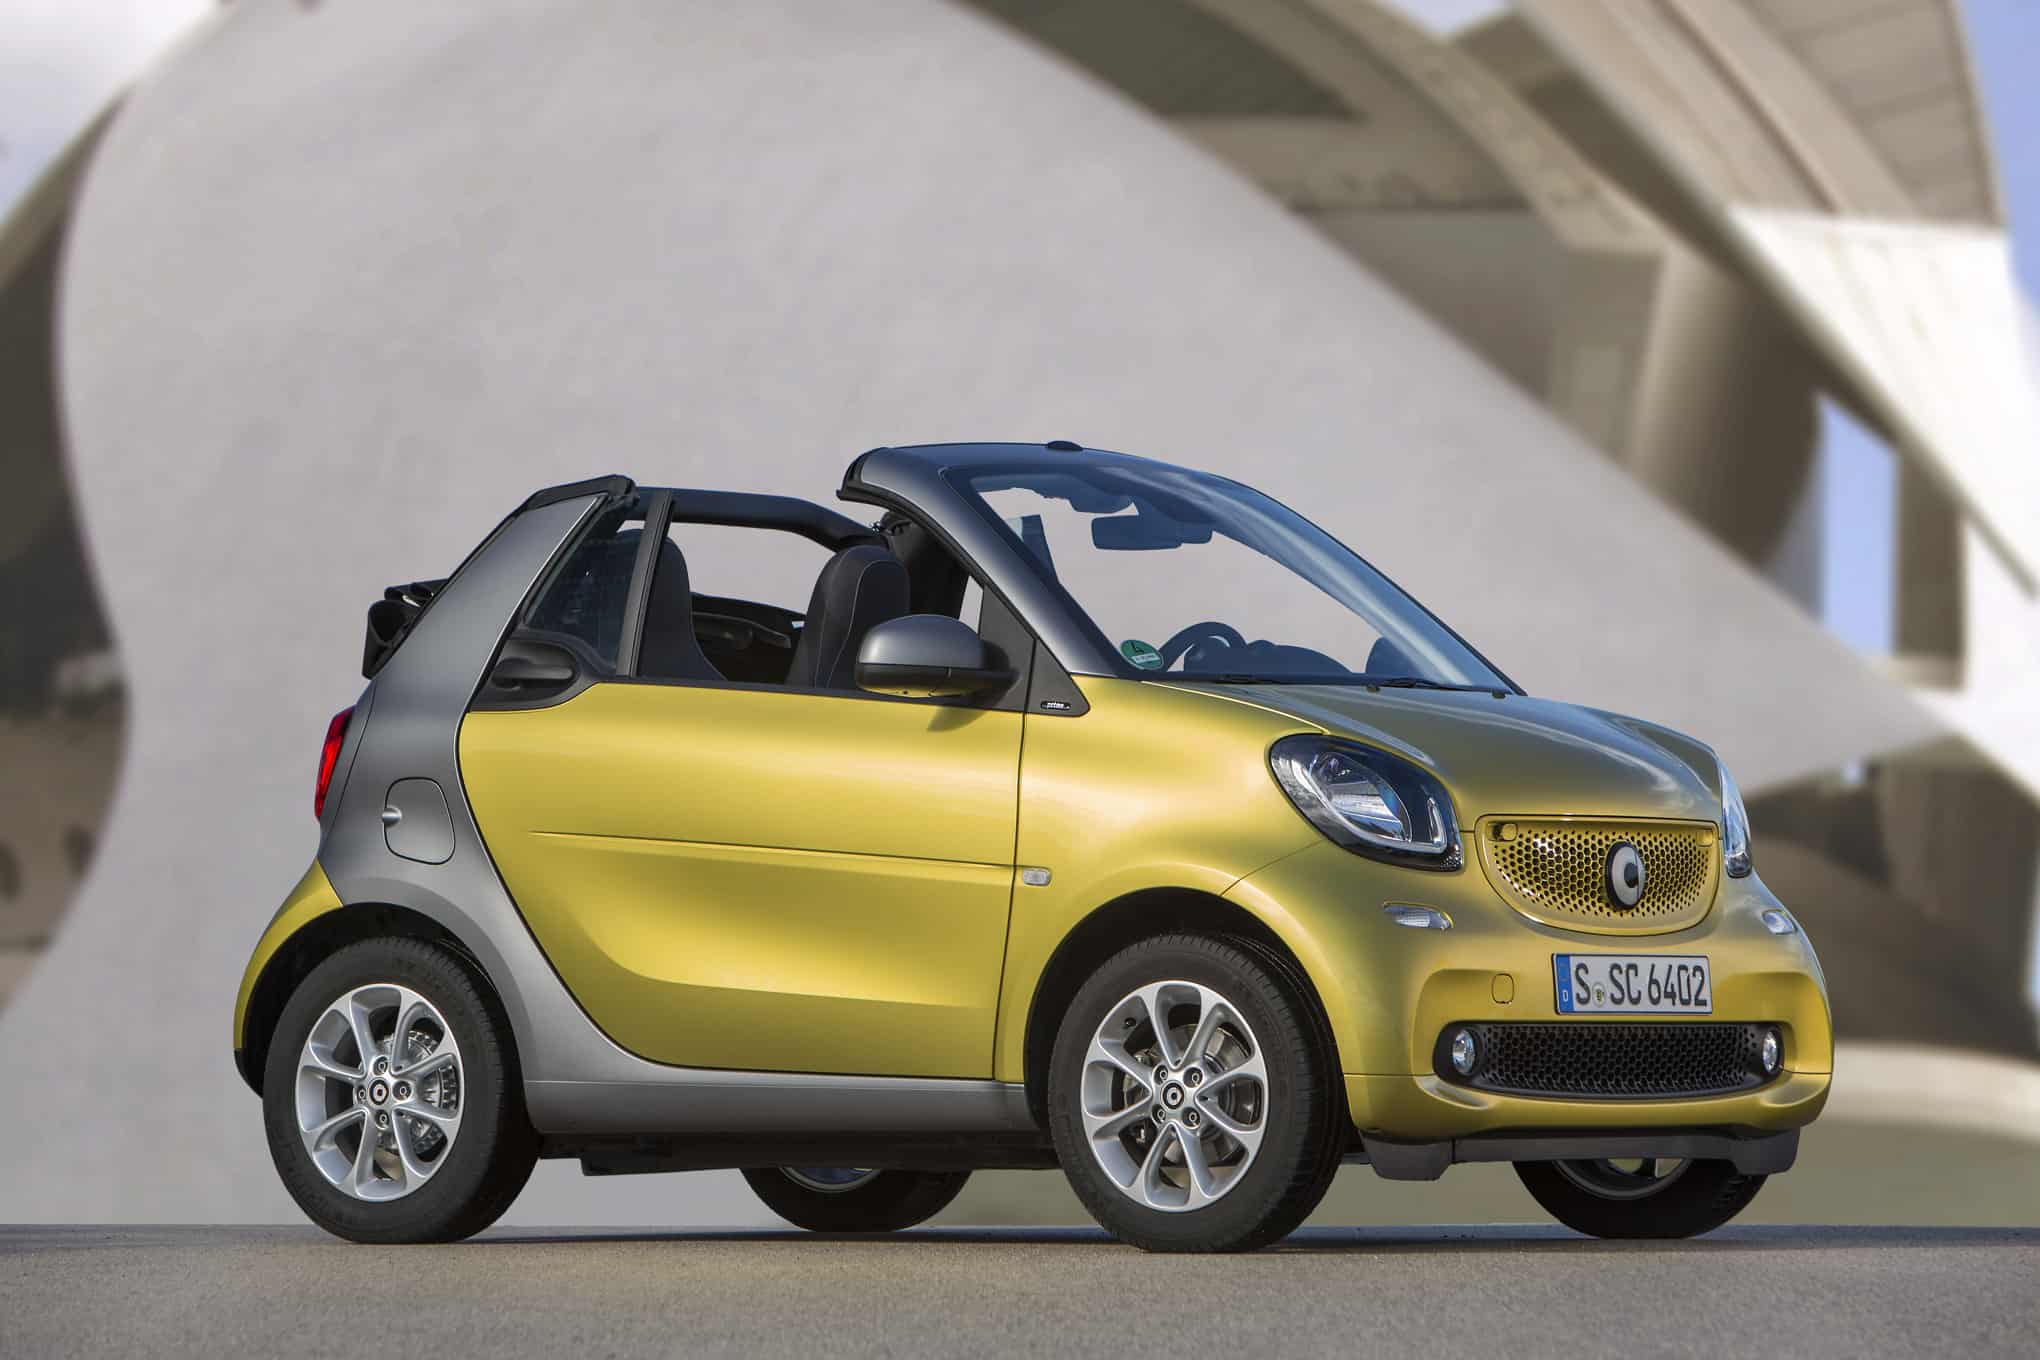 The Smart ForTwo is a car that will be discontinued after 2018.